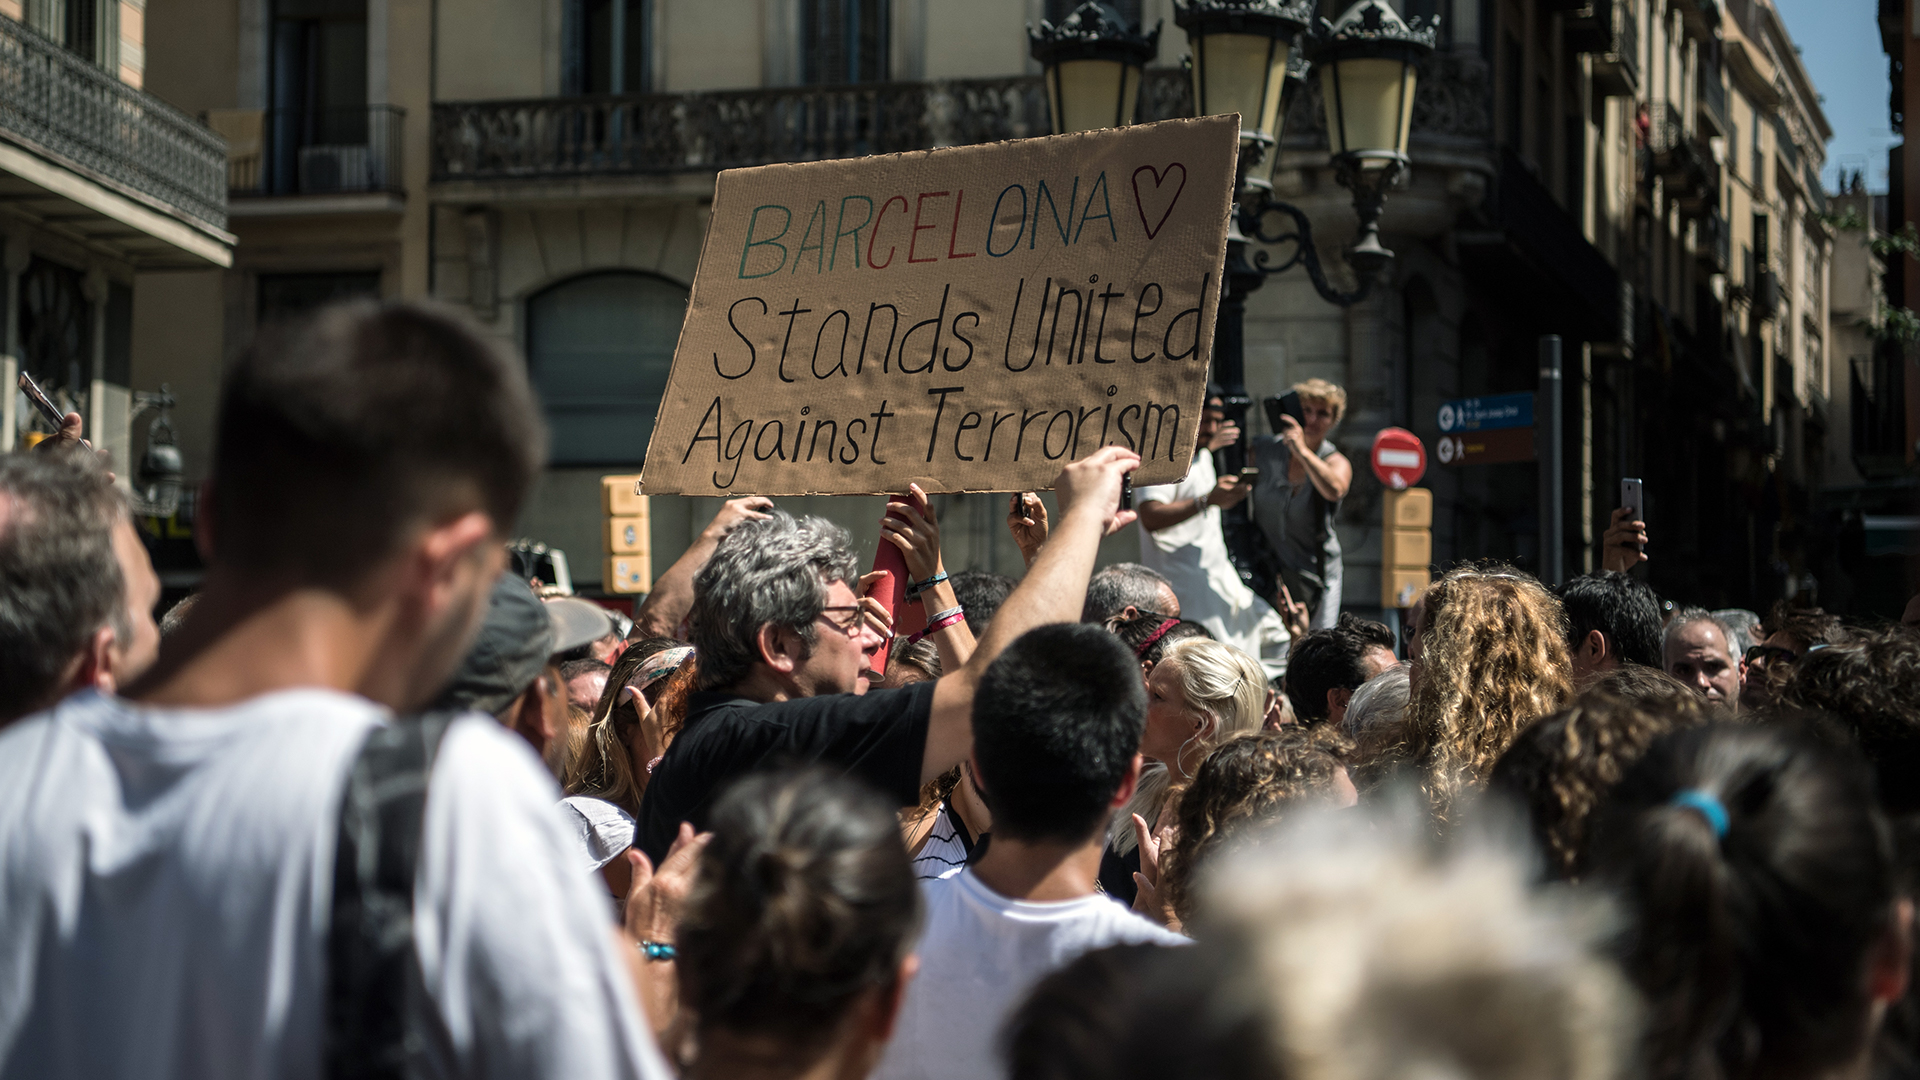 Barcelona van attack Sign held up-159532.jpg66570405